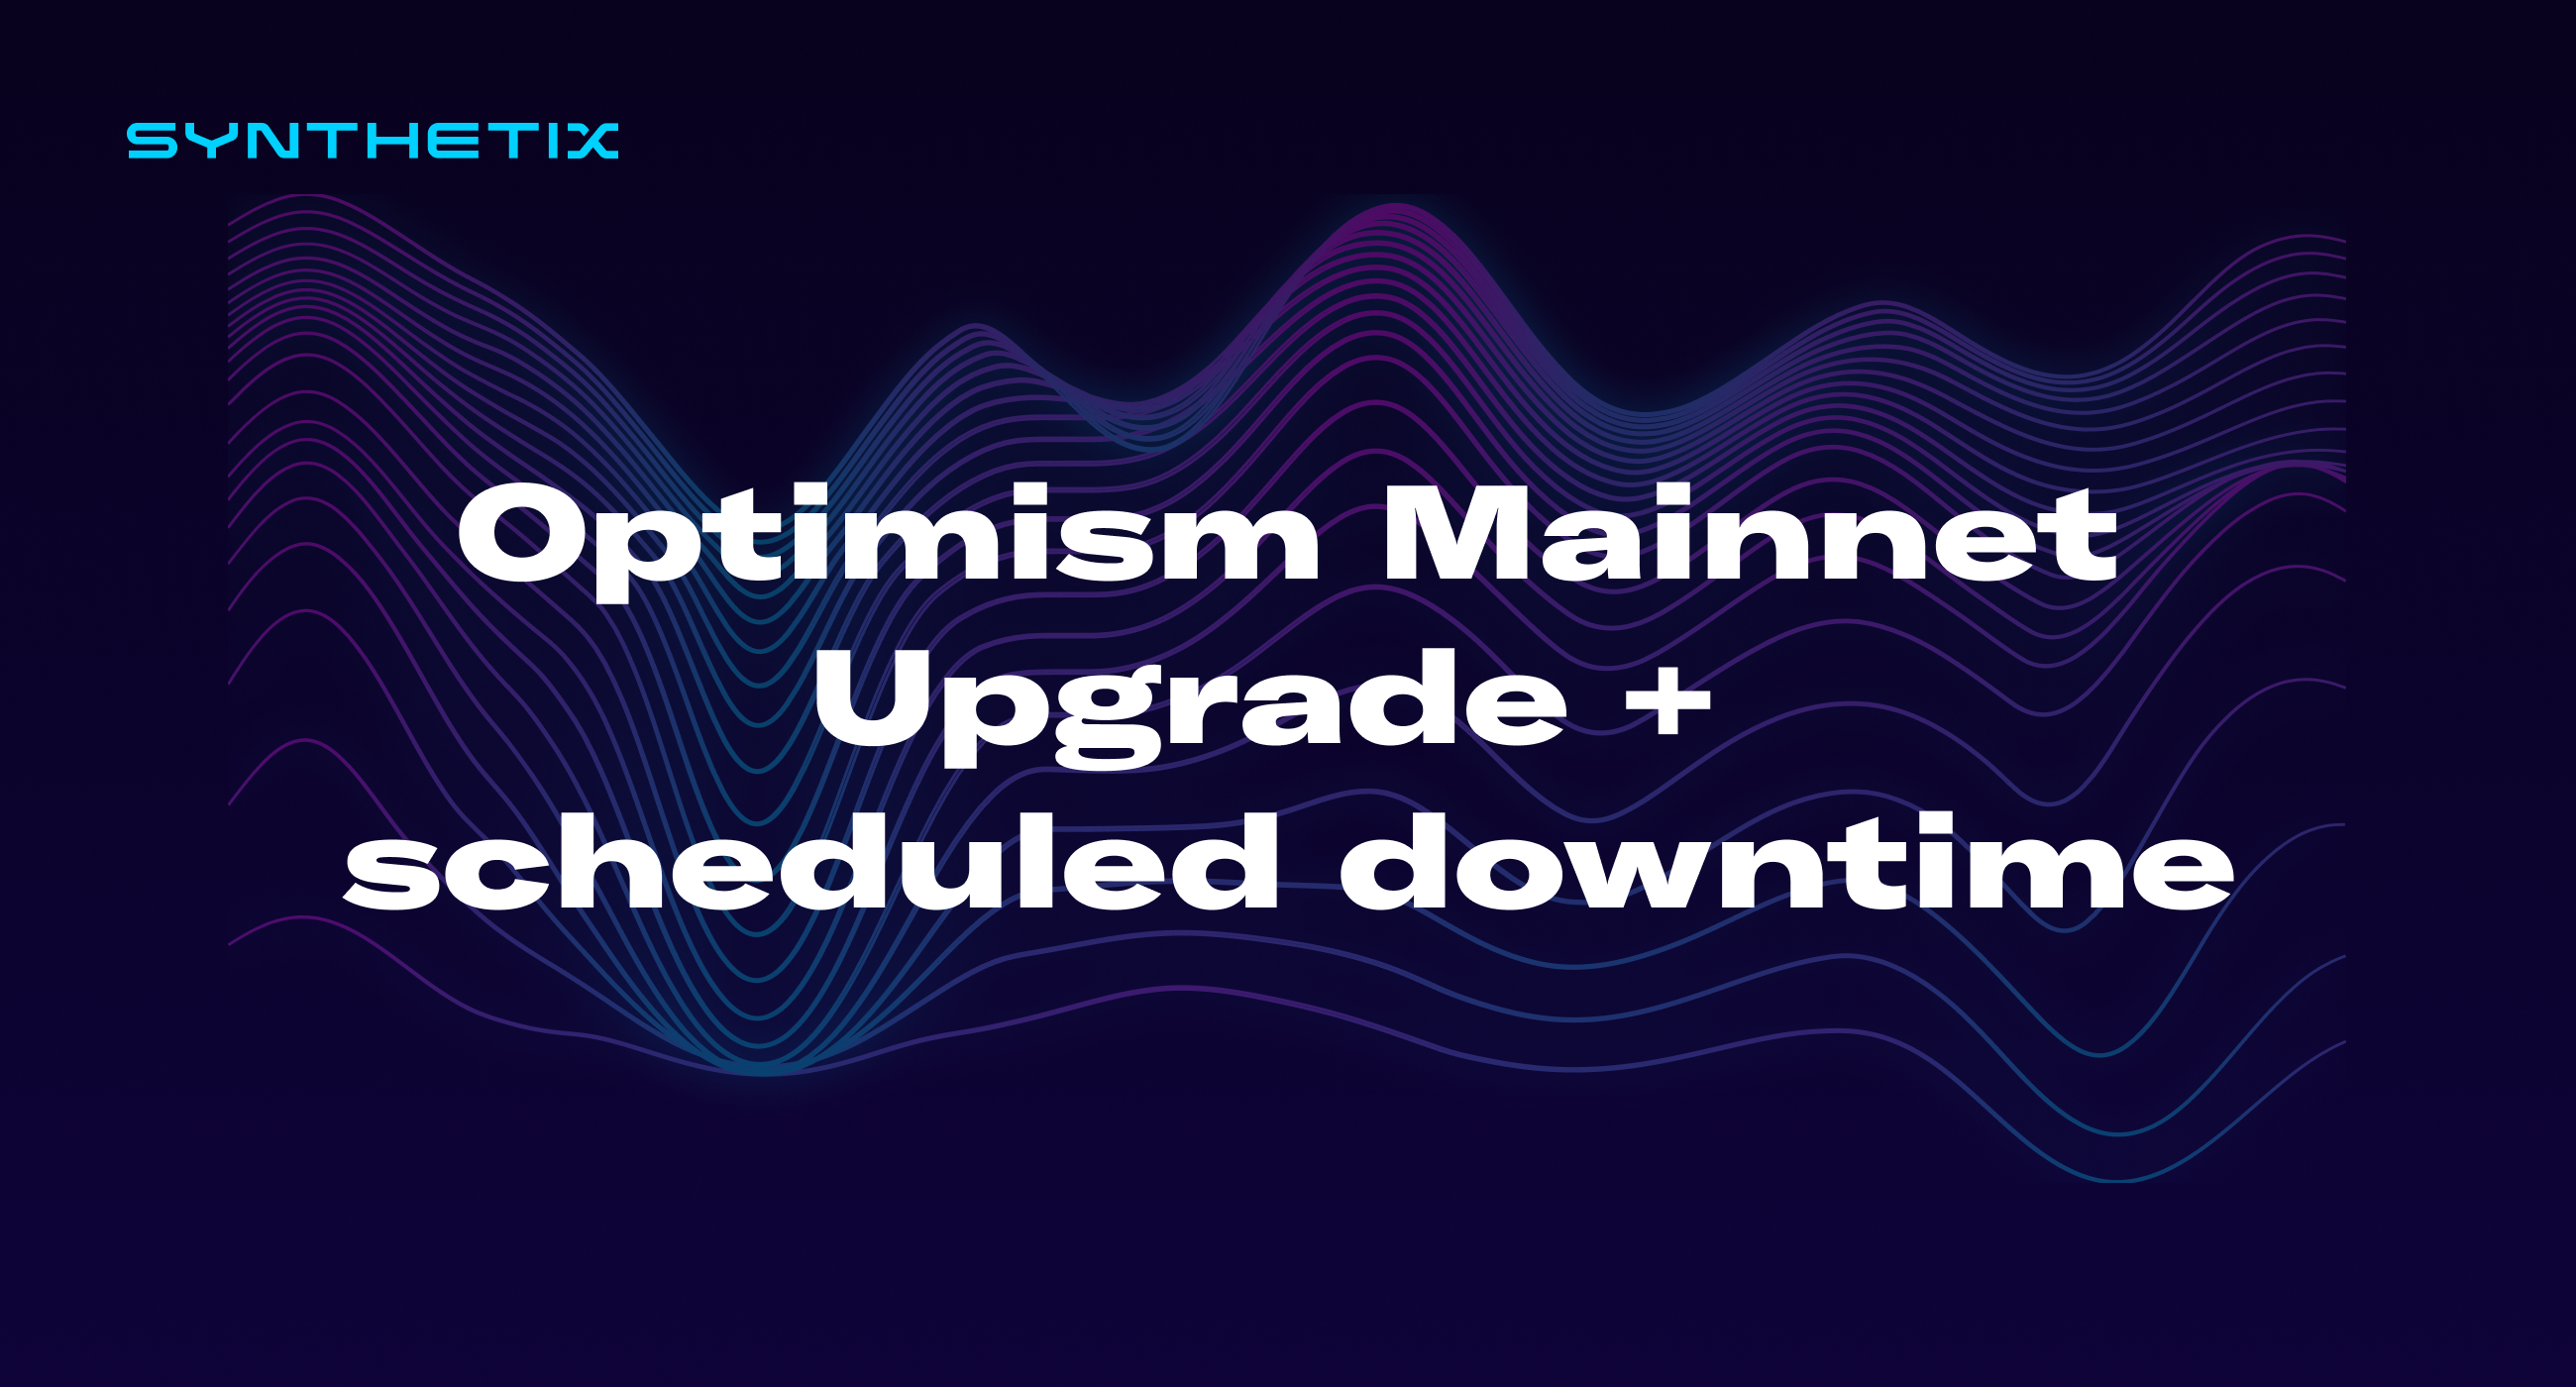 Optimism Mainnet Upgrade: Scheduled Downtime and Regenesis